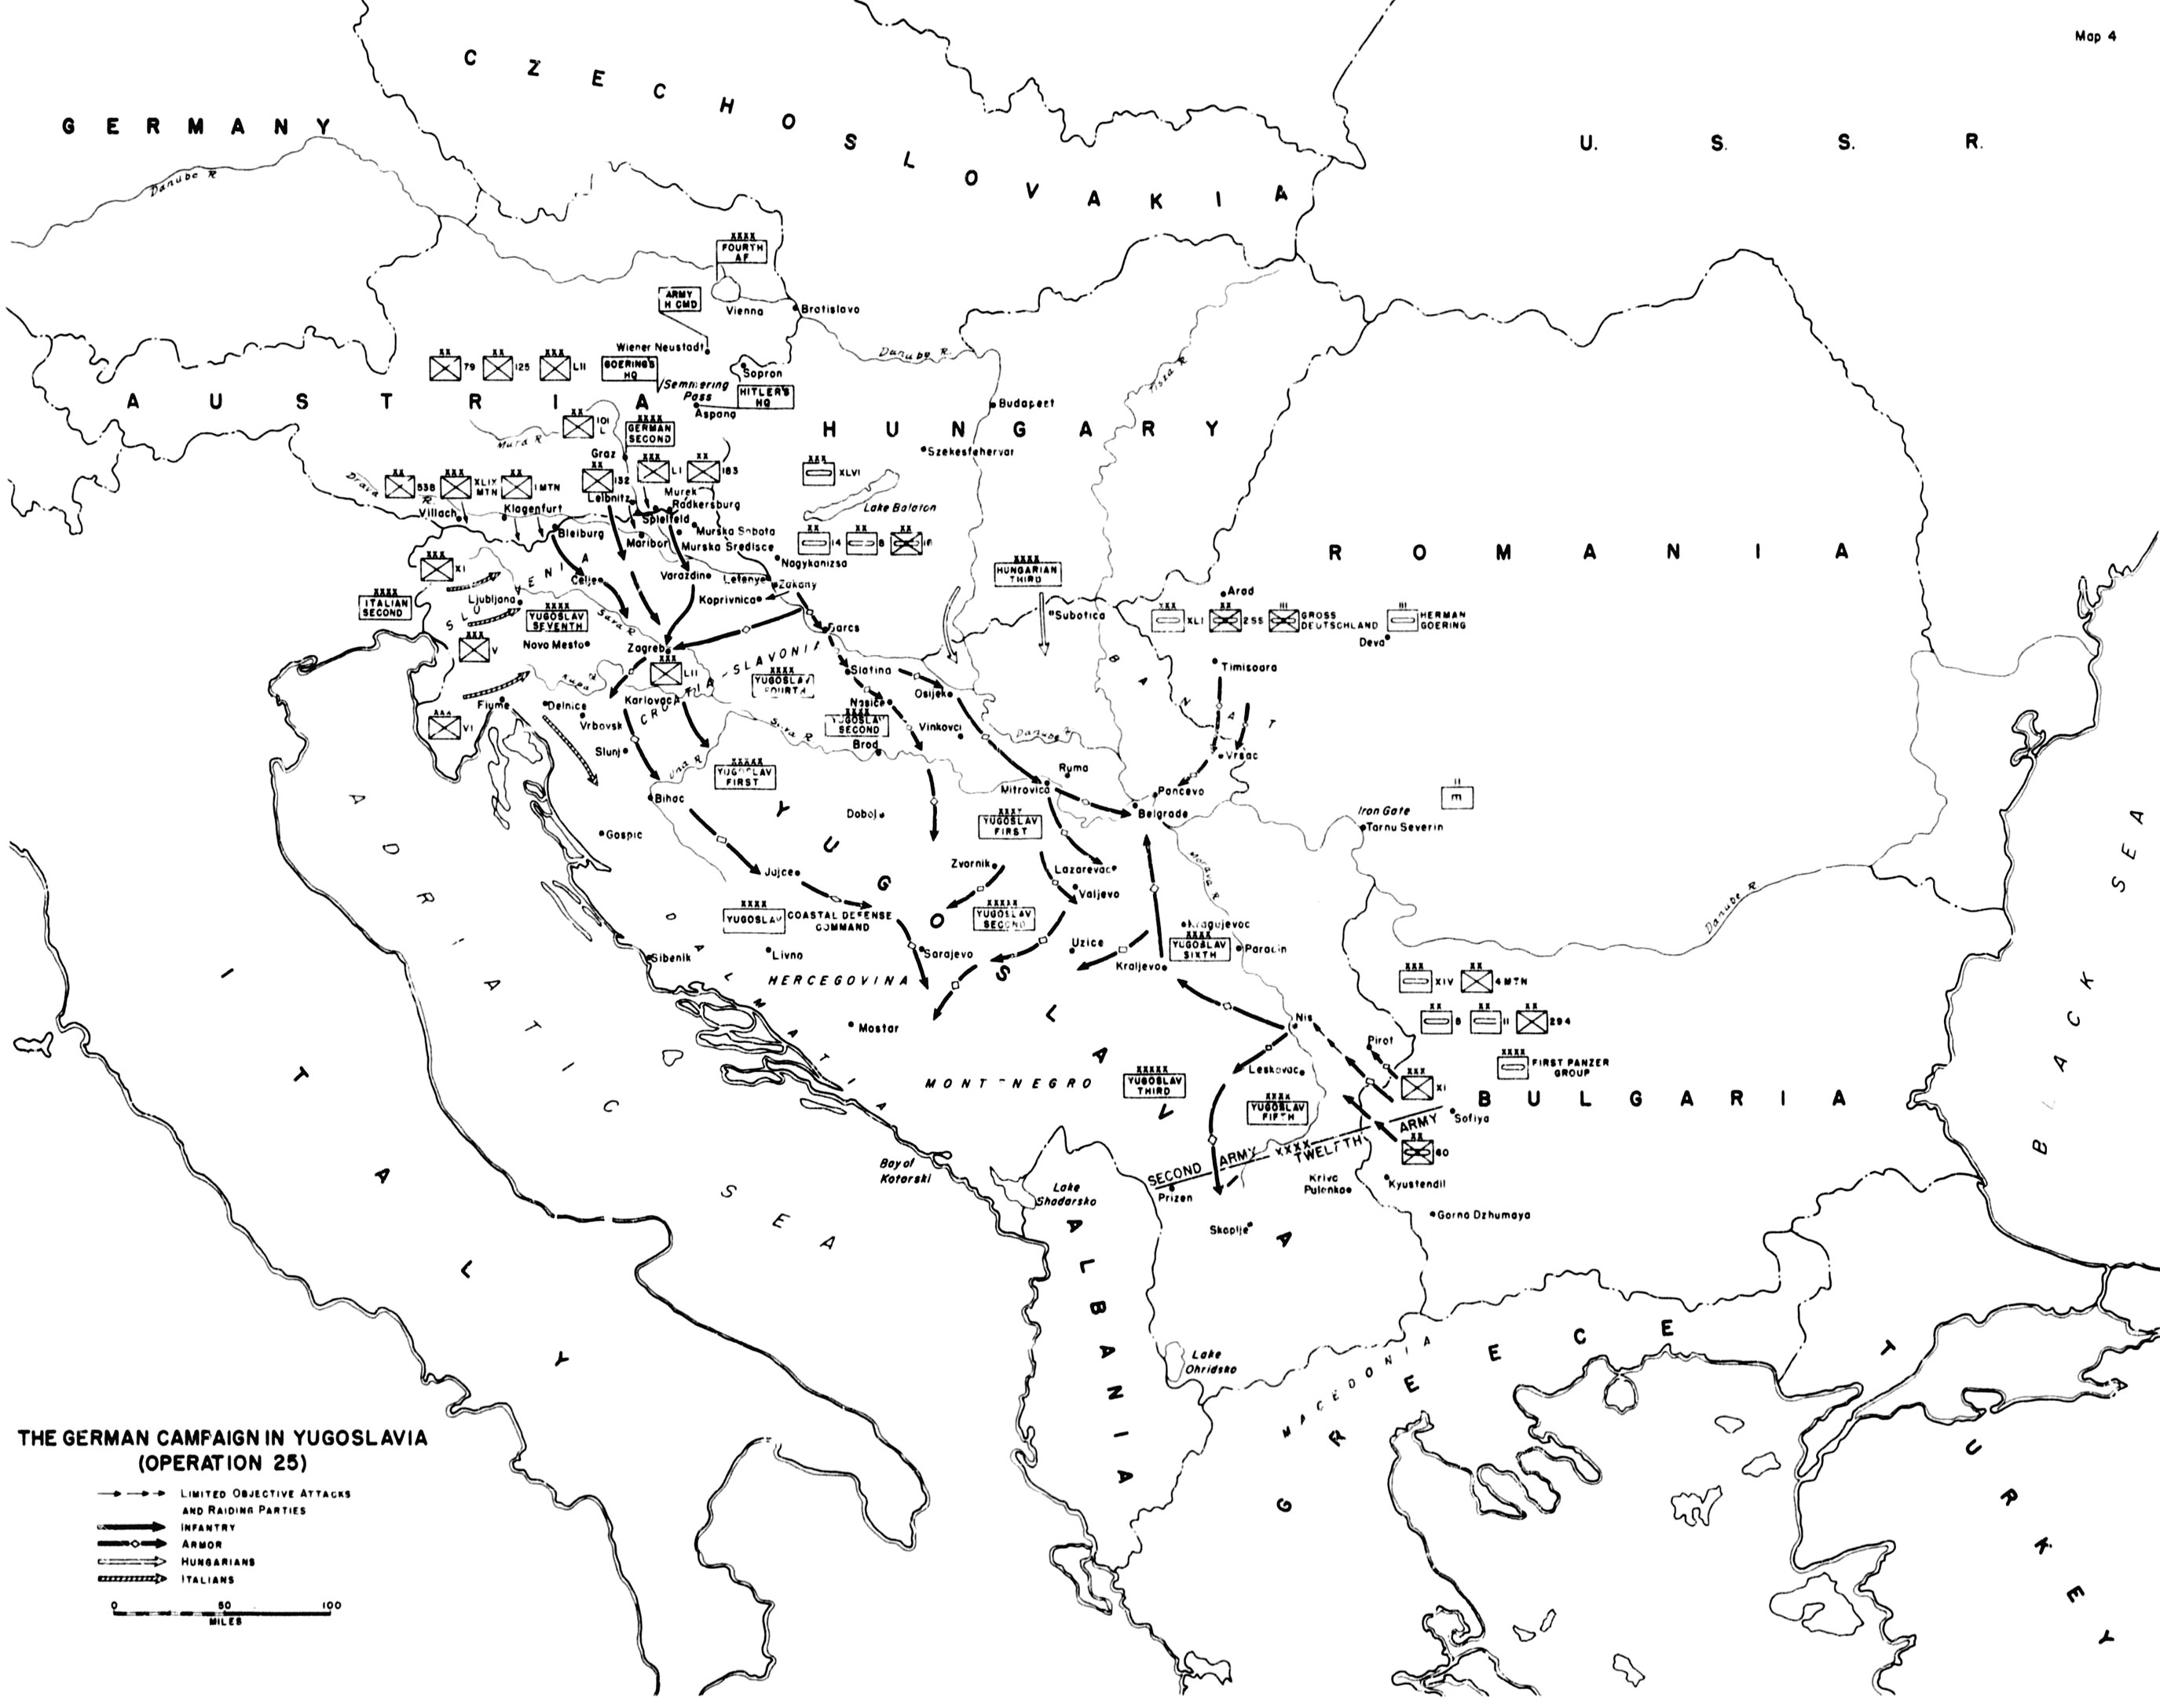 the german c aign in the balkans 1941 by mueller hillebrand Balkan Peninsula Continent click to enlarge